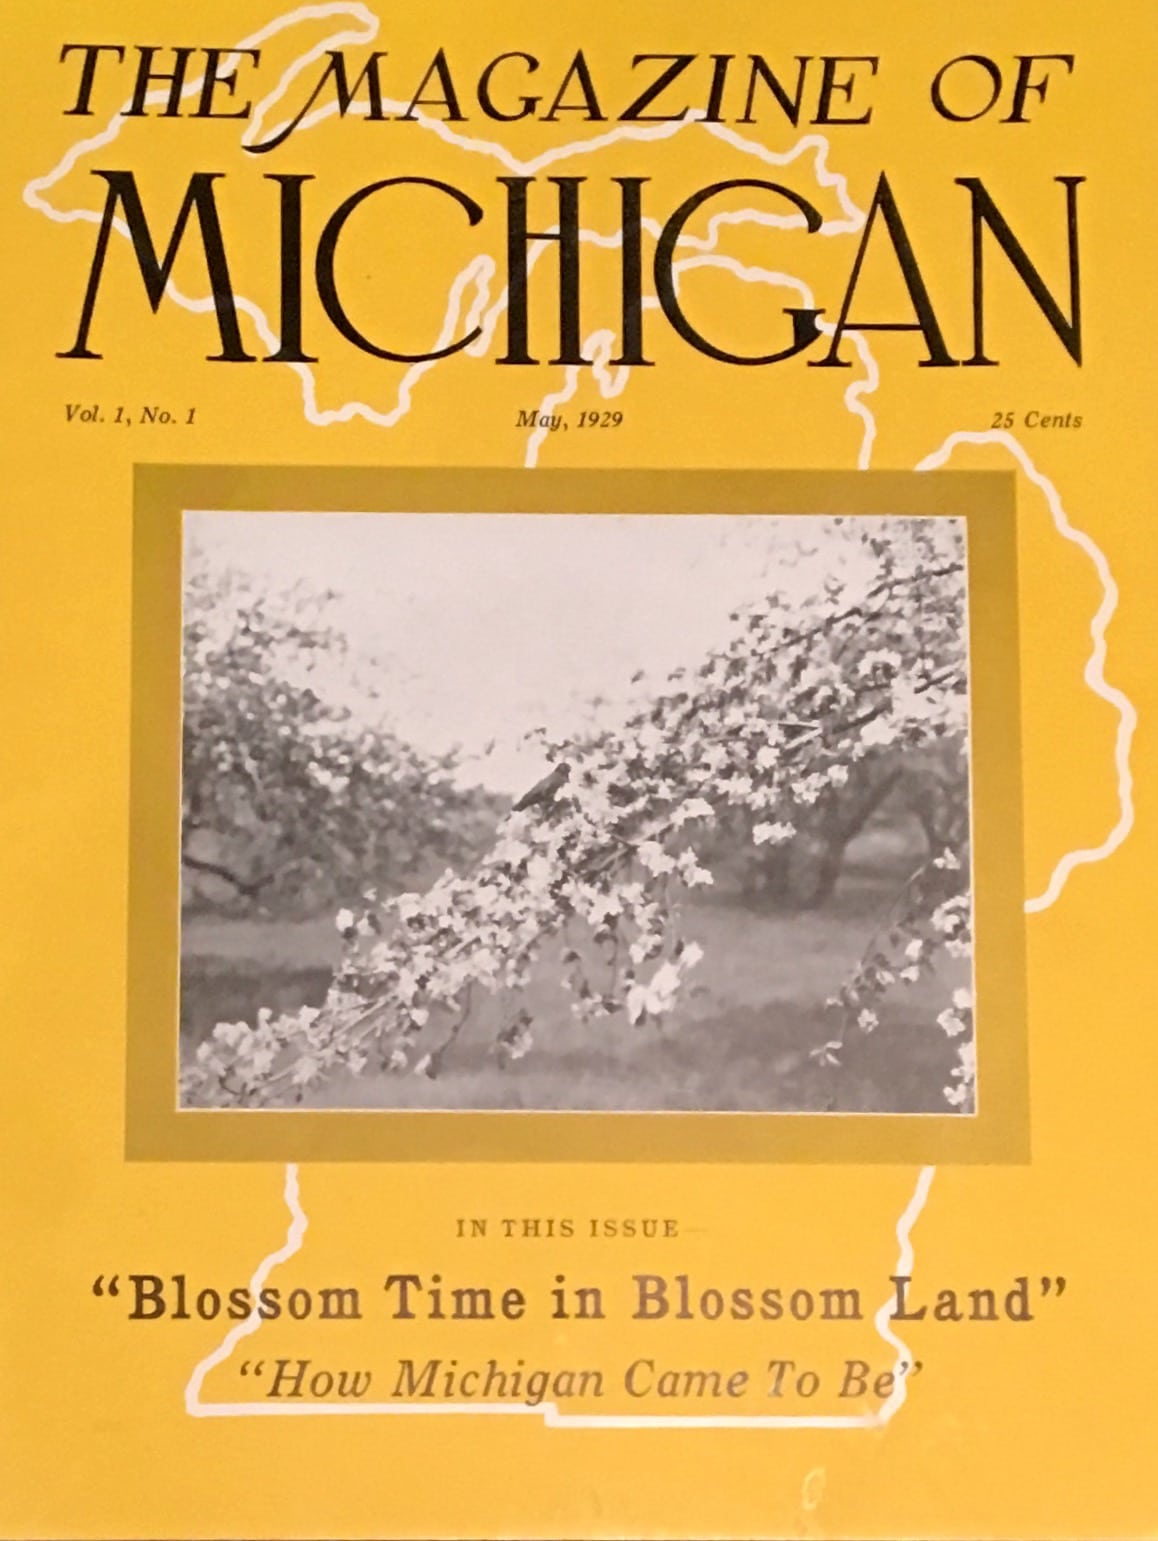 Magazine of Michigan